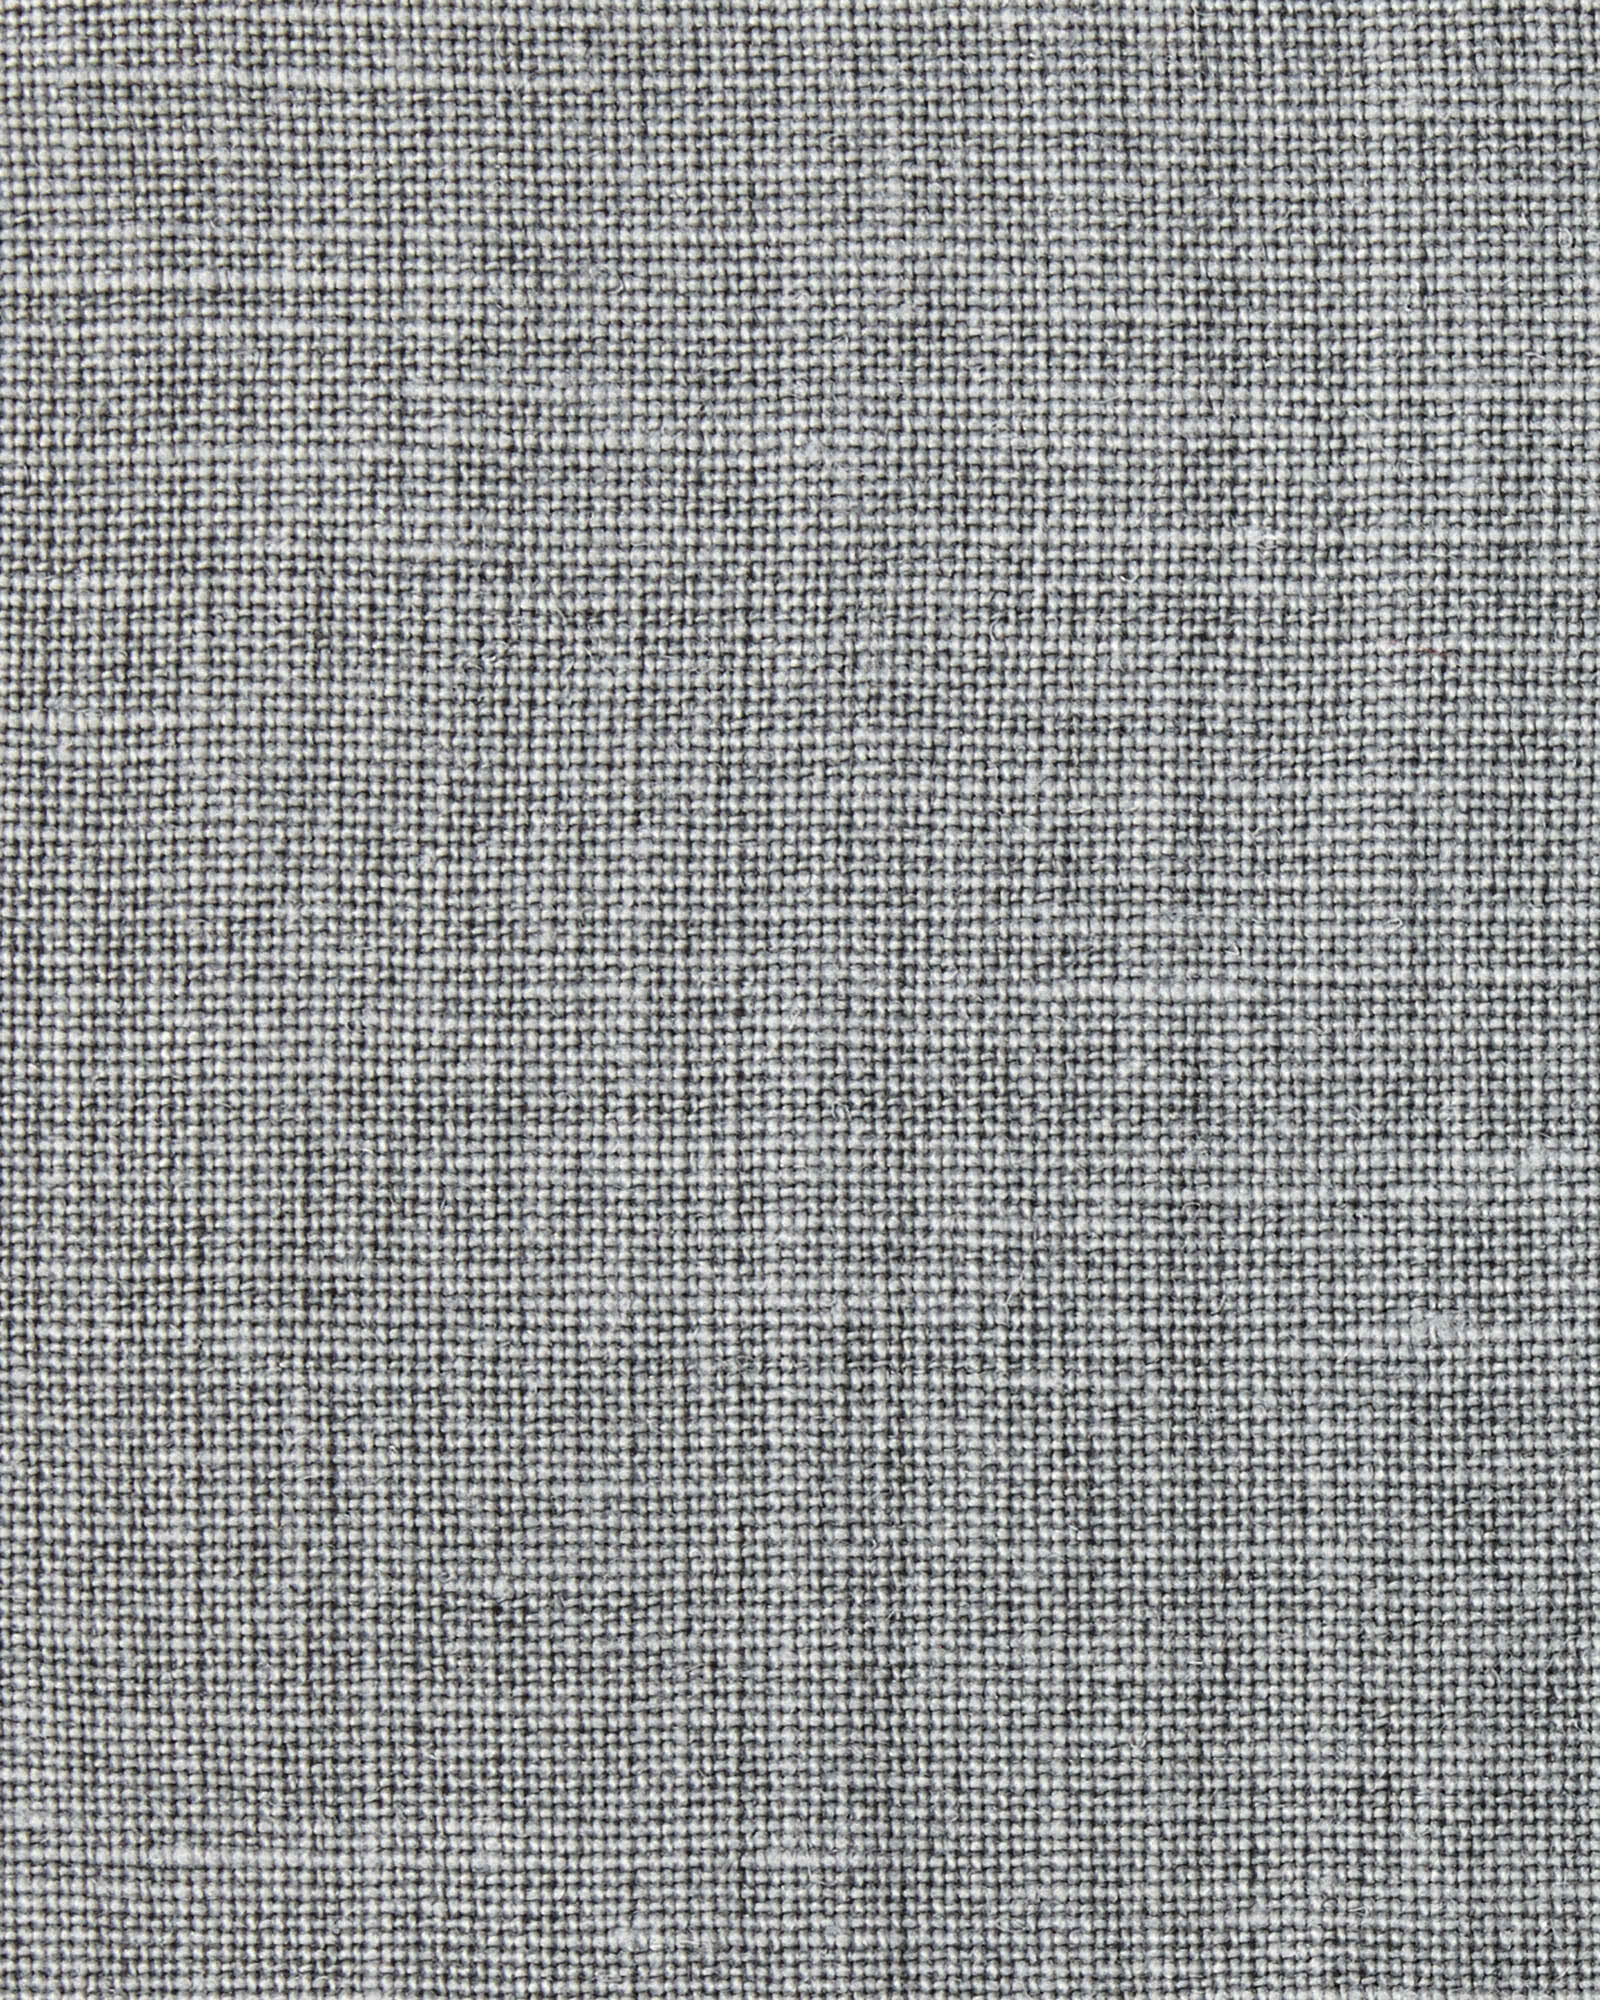 Washed Linen Fabric - Metal, Metal